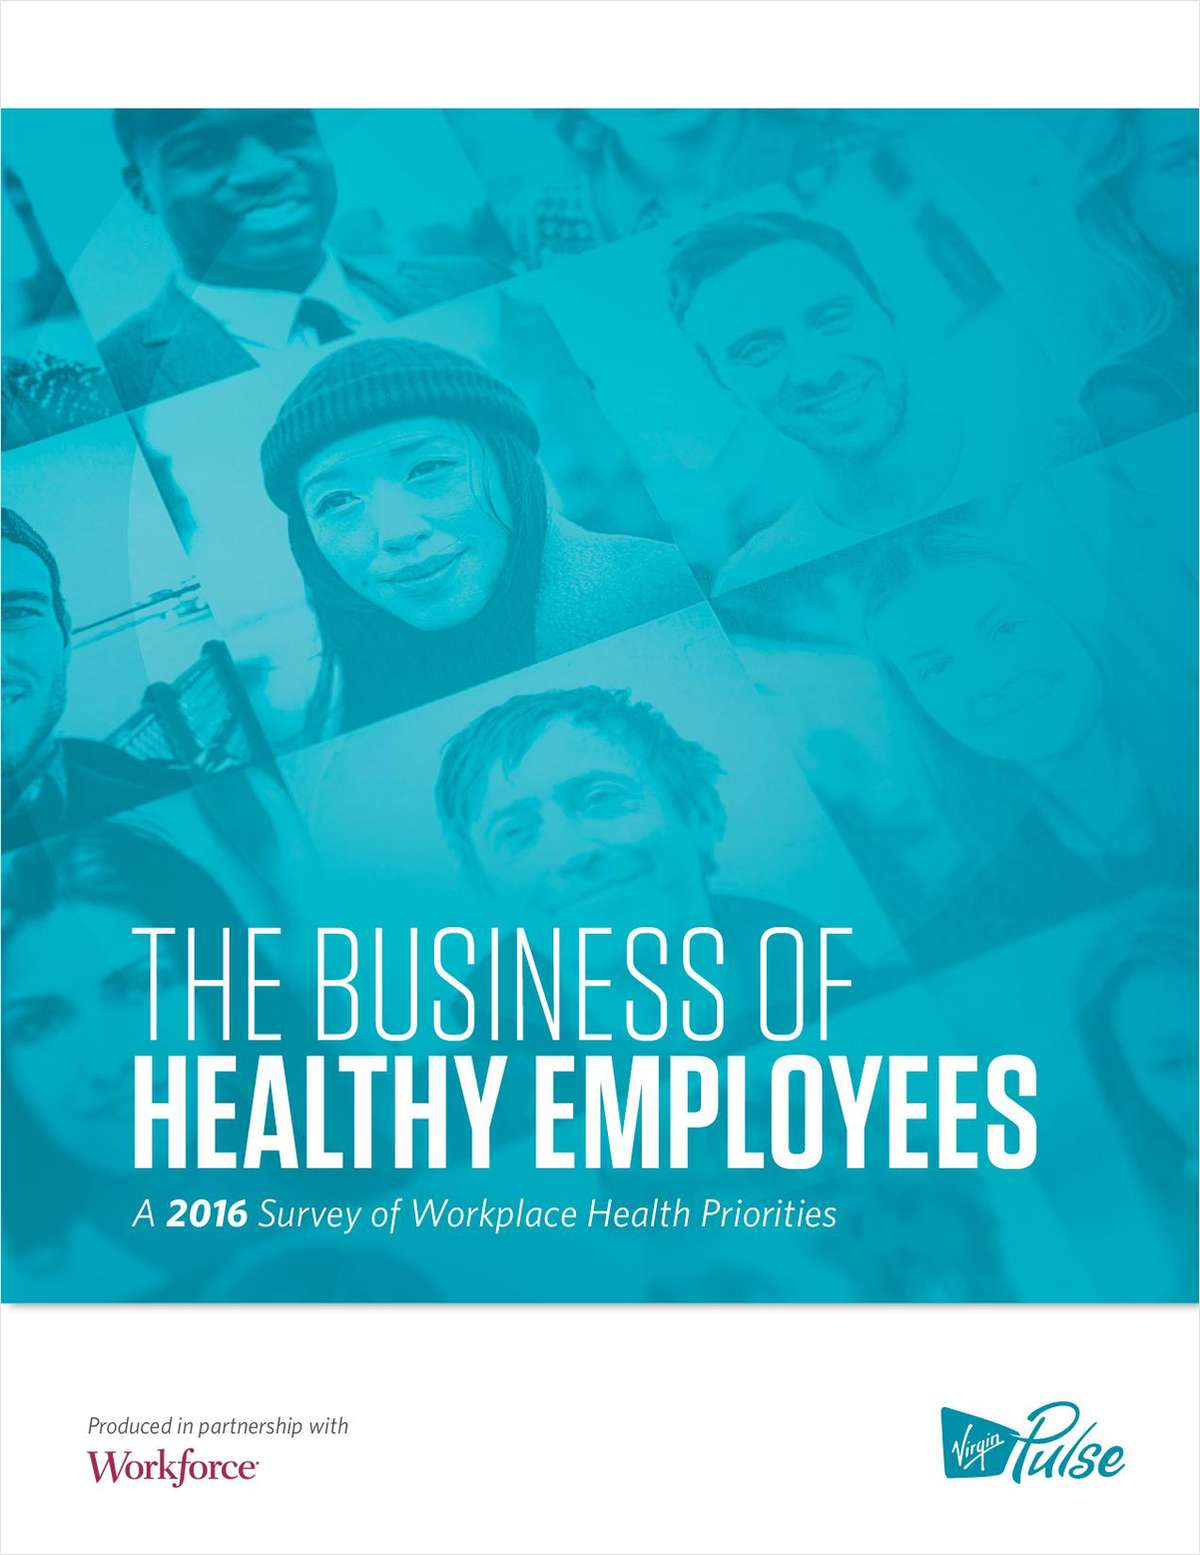 The Business of Healthy Employees